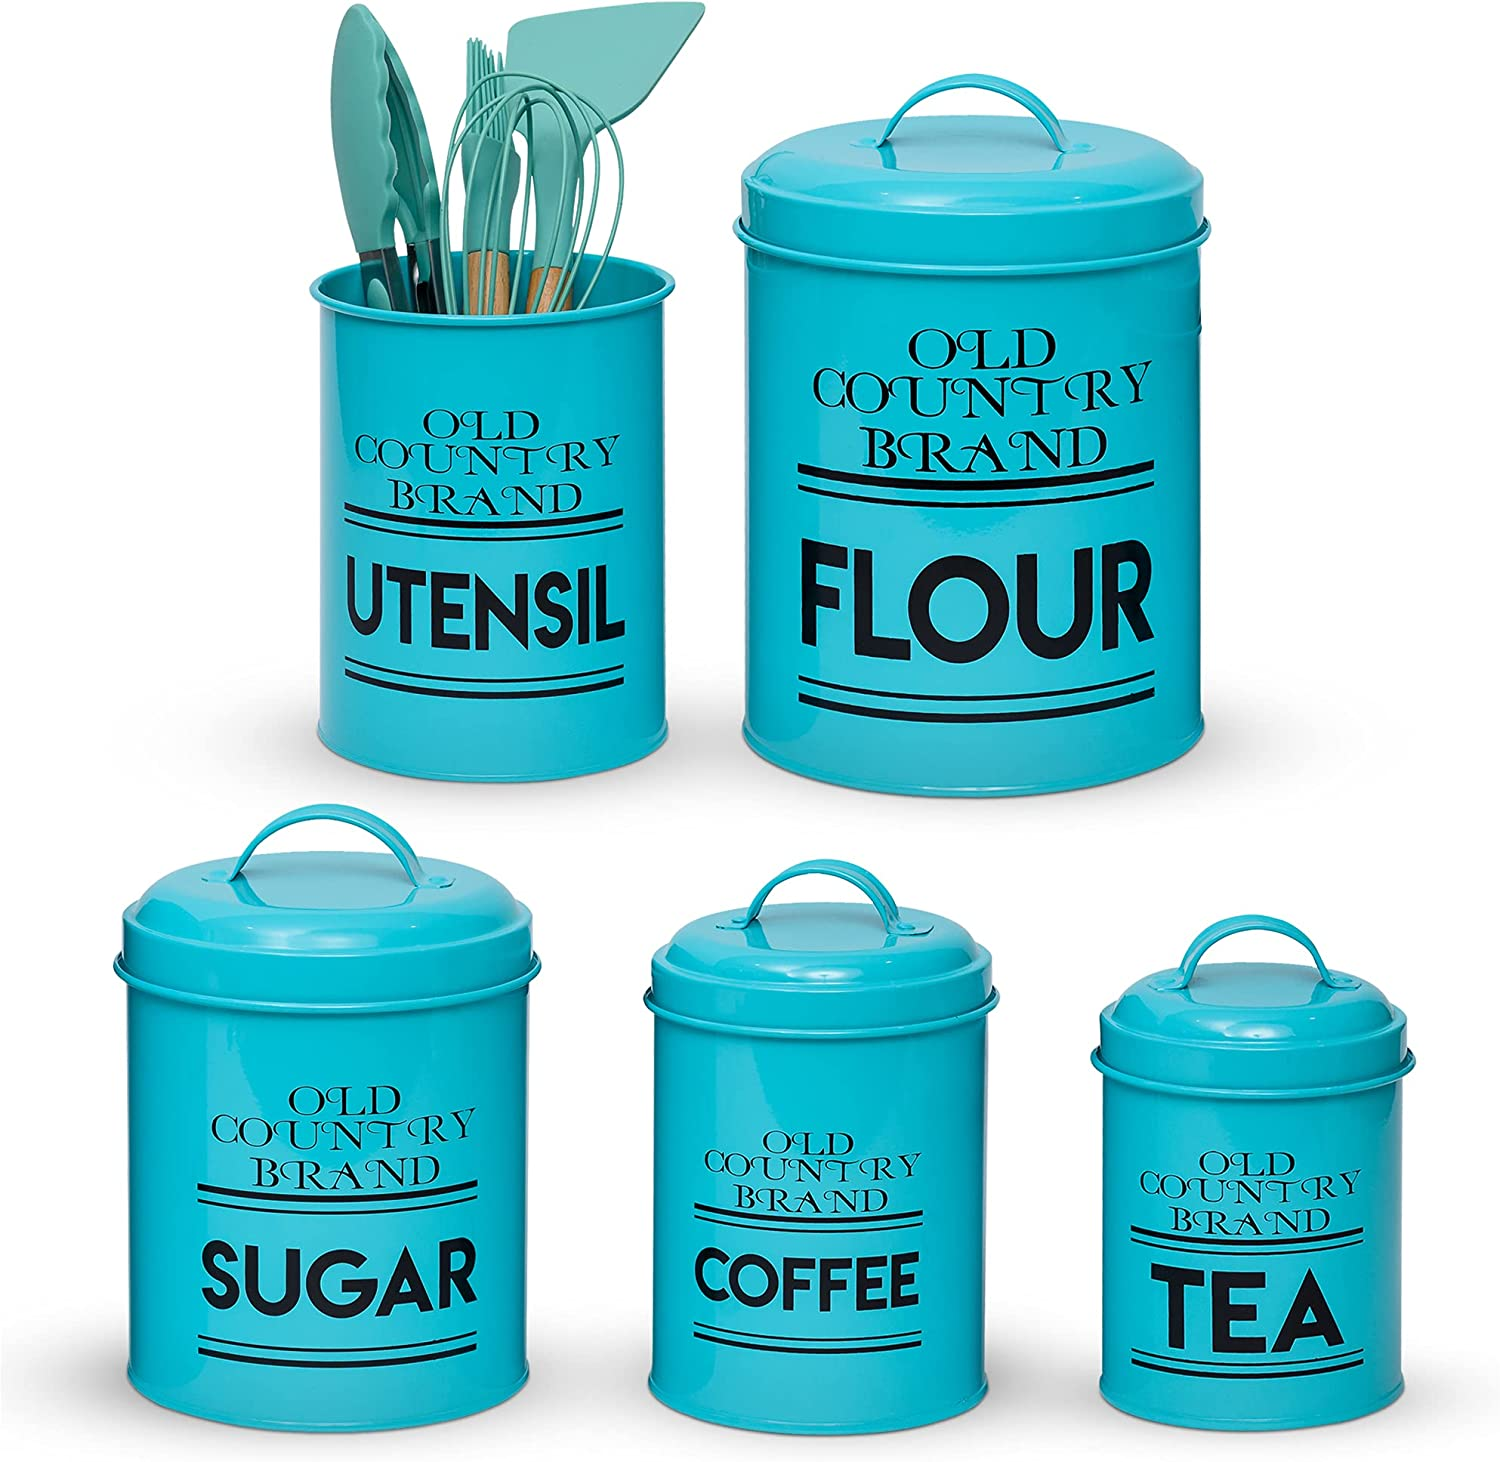 Farmhouse Kitchen Canisters – with Nesting Uten Canister Las Vegas Mall Los Angeles Mall